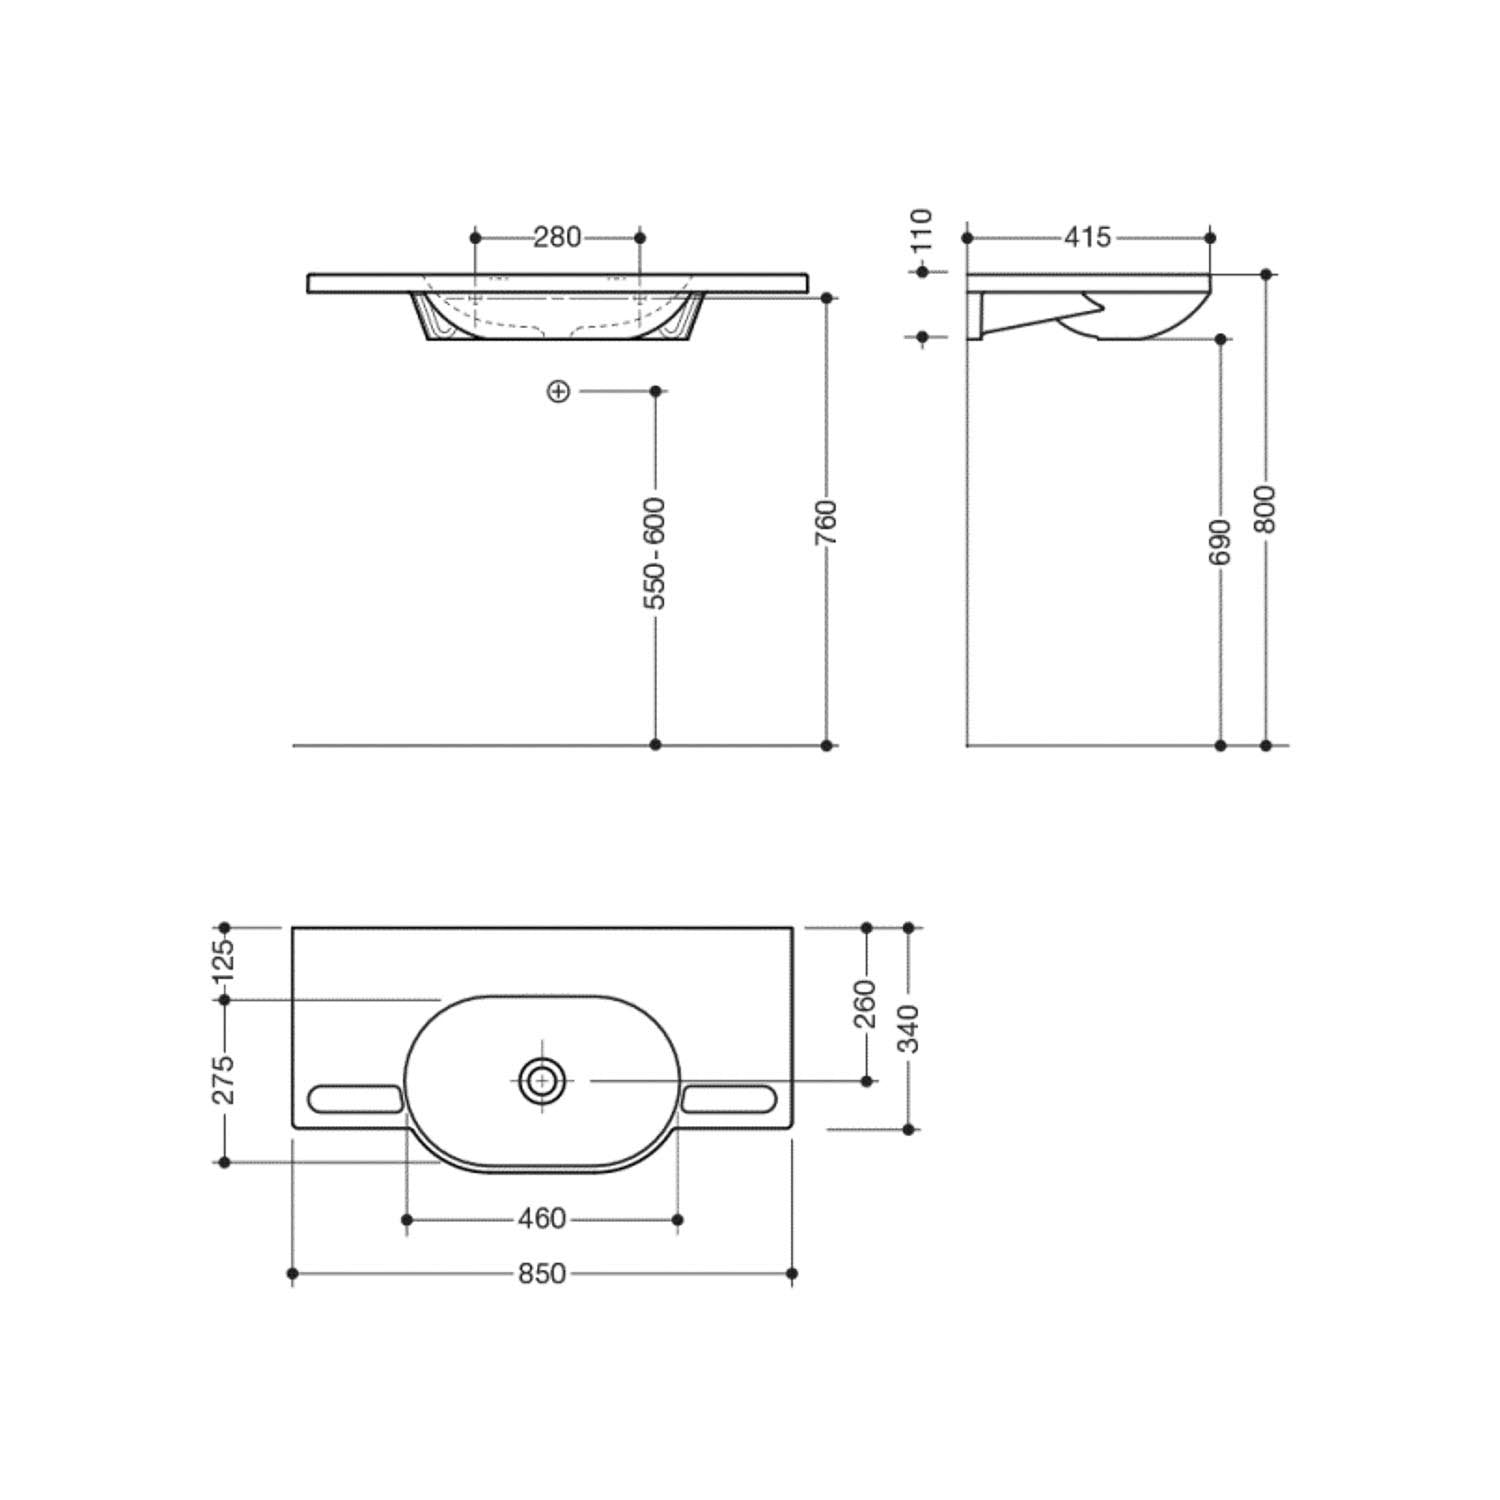 850mm SurfaceHold Wall Hung Long Oval Basin with no tap hole dimensional drawing